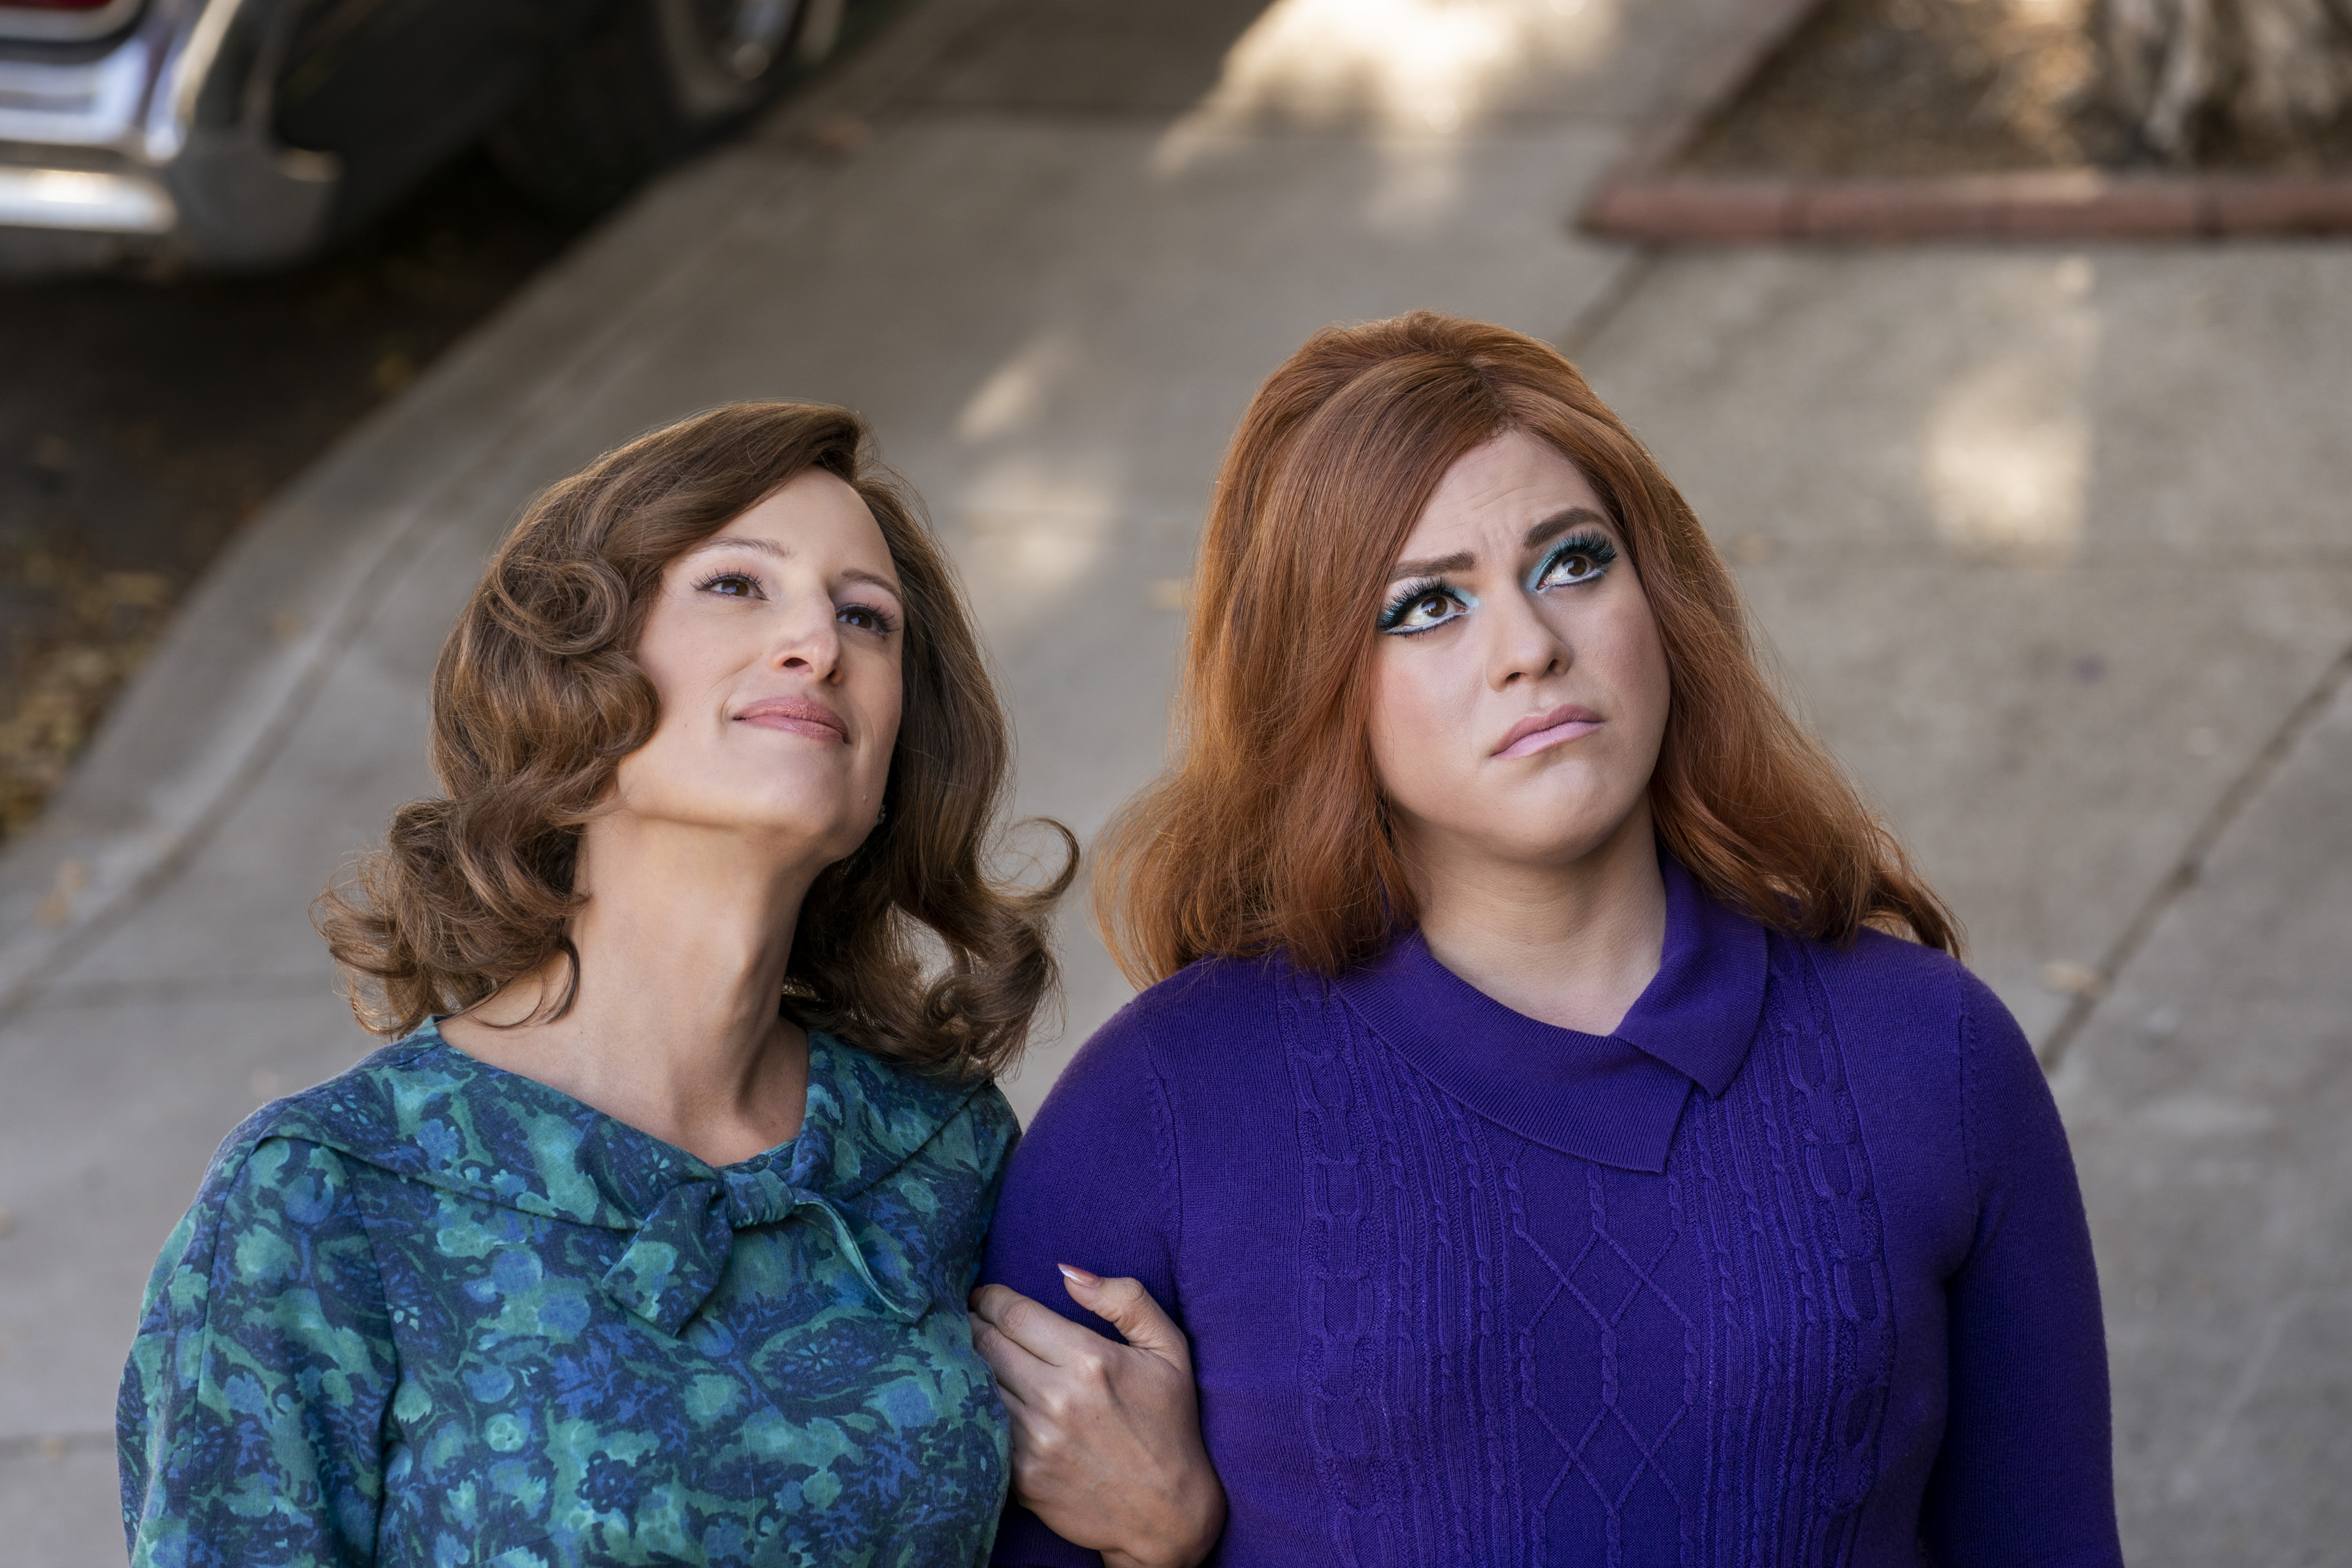 'Tales of the City' Trailer: First Look at Daniela Vega and Jen Richards in LGBTQ Series